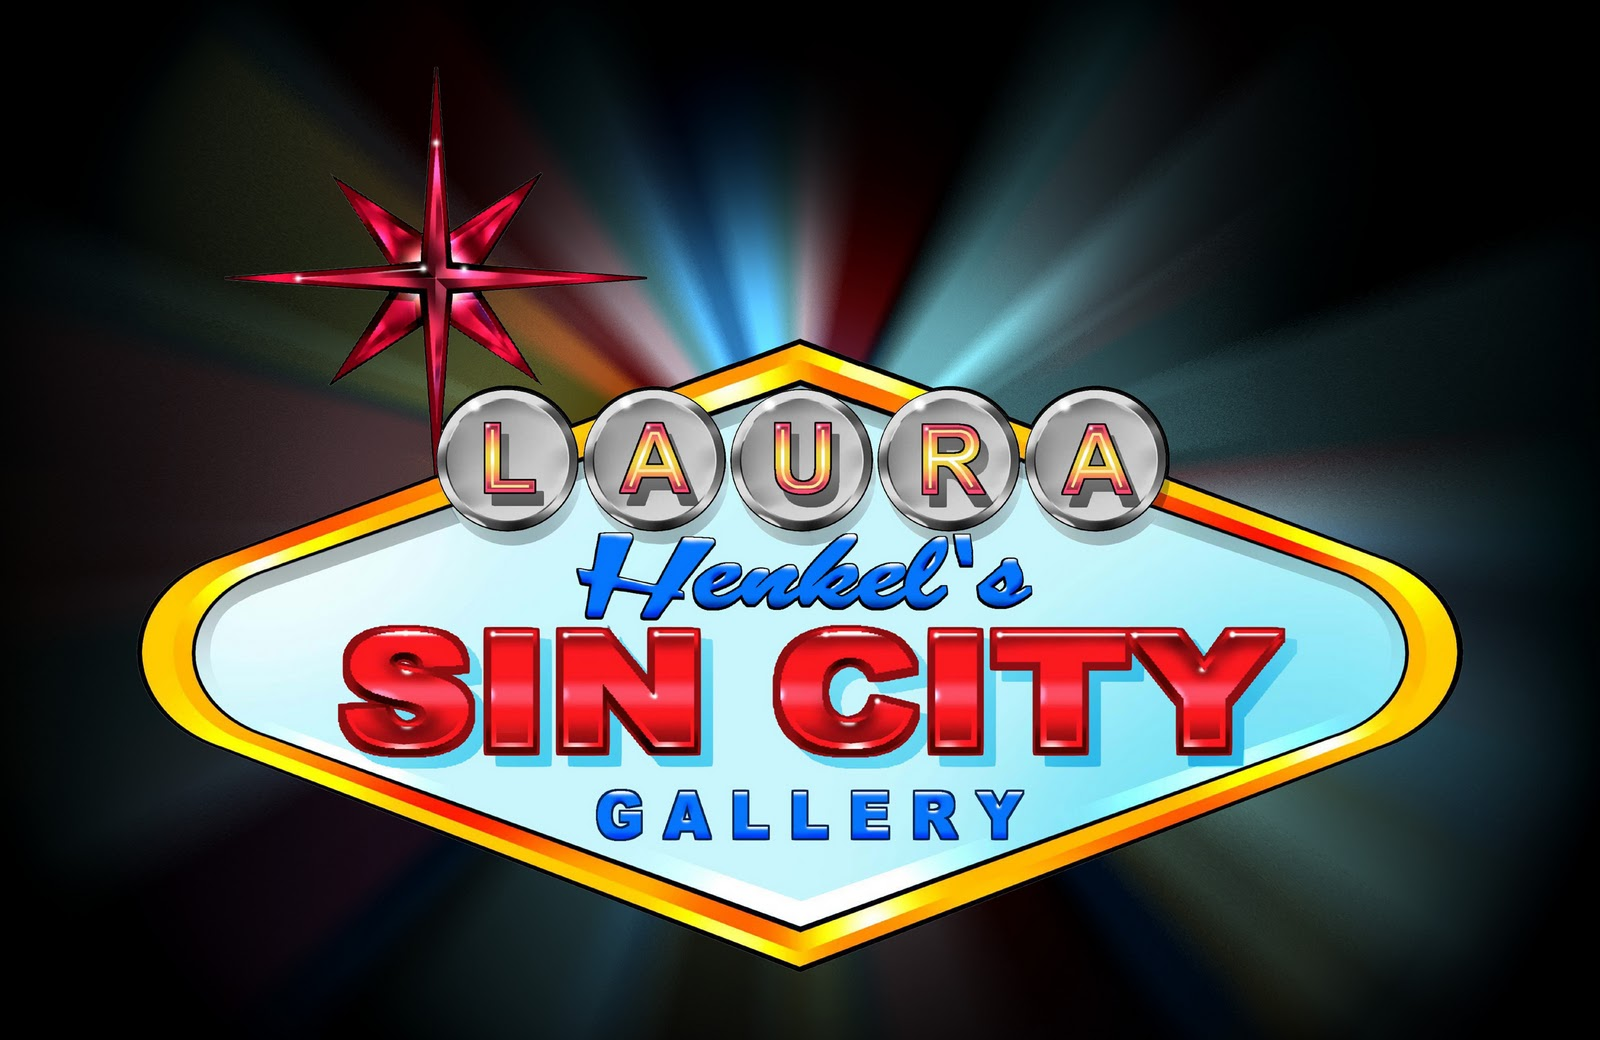 Las Vegas Arts And Culture Las Vegass Newest And Naughtiest Gallery Is Here-1198